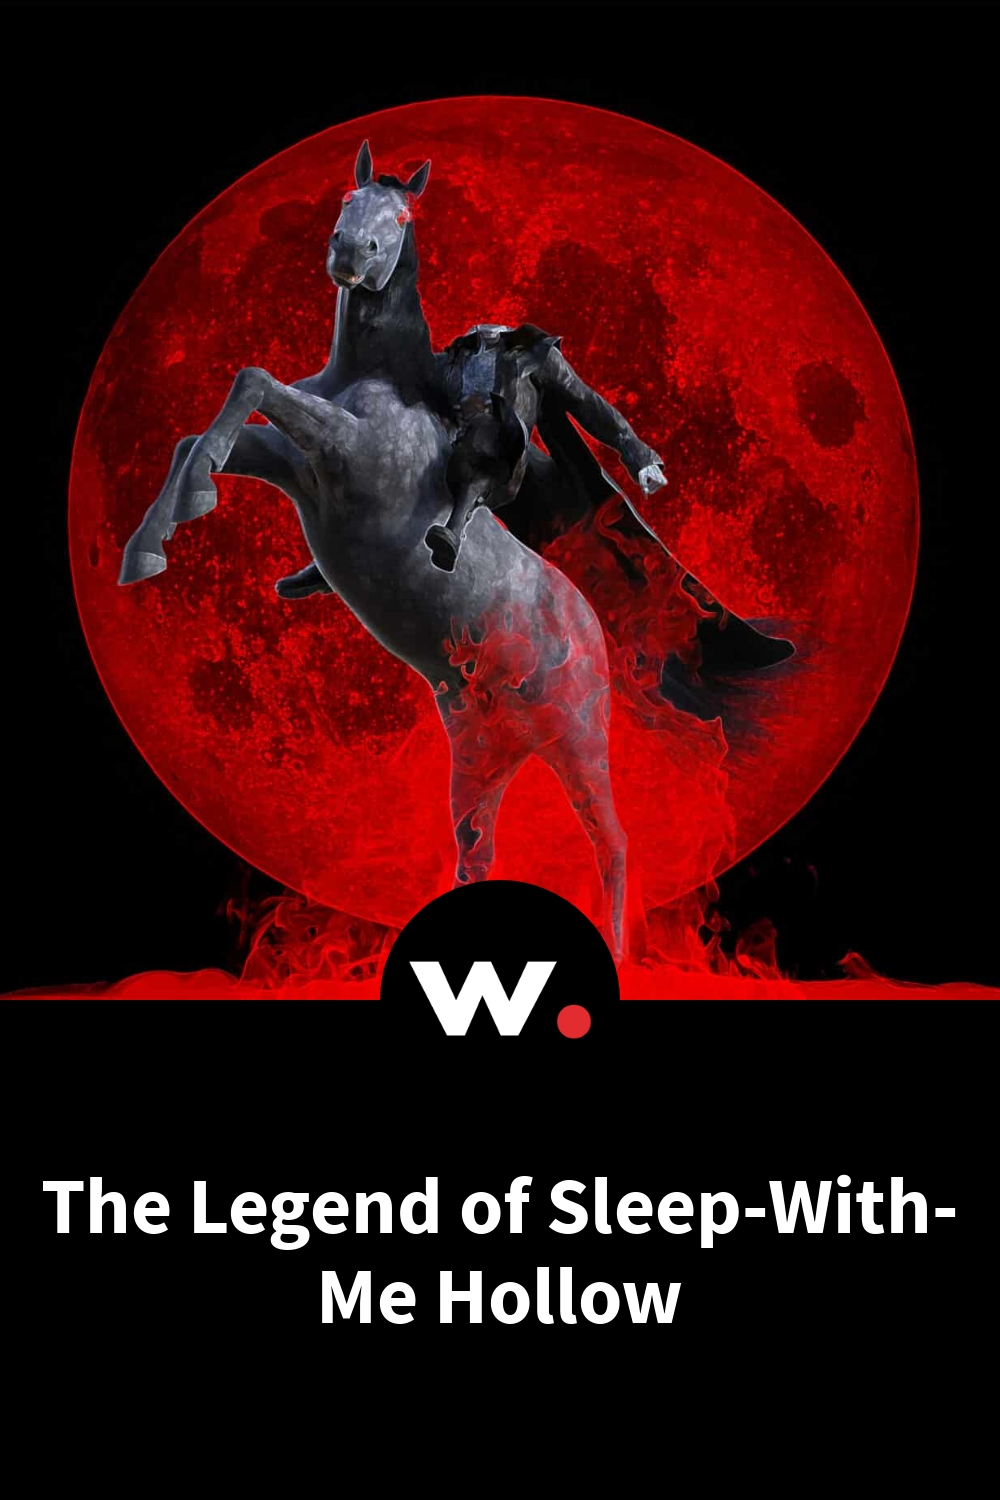 The Legend of Sleep-With-Me Hollow